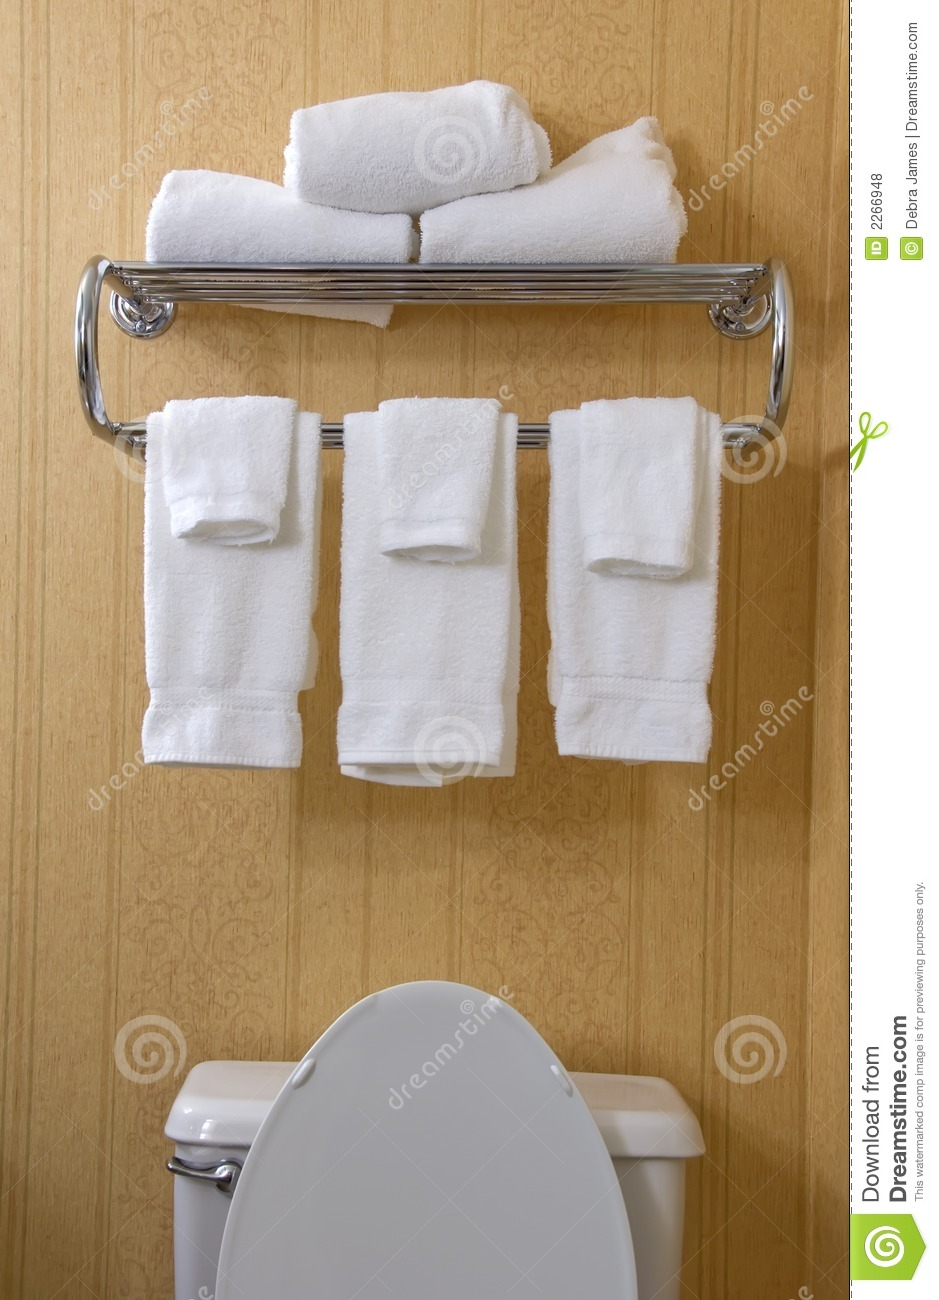 Partial Toilet And Towel Rack Stock Photo Image Of Towel